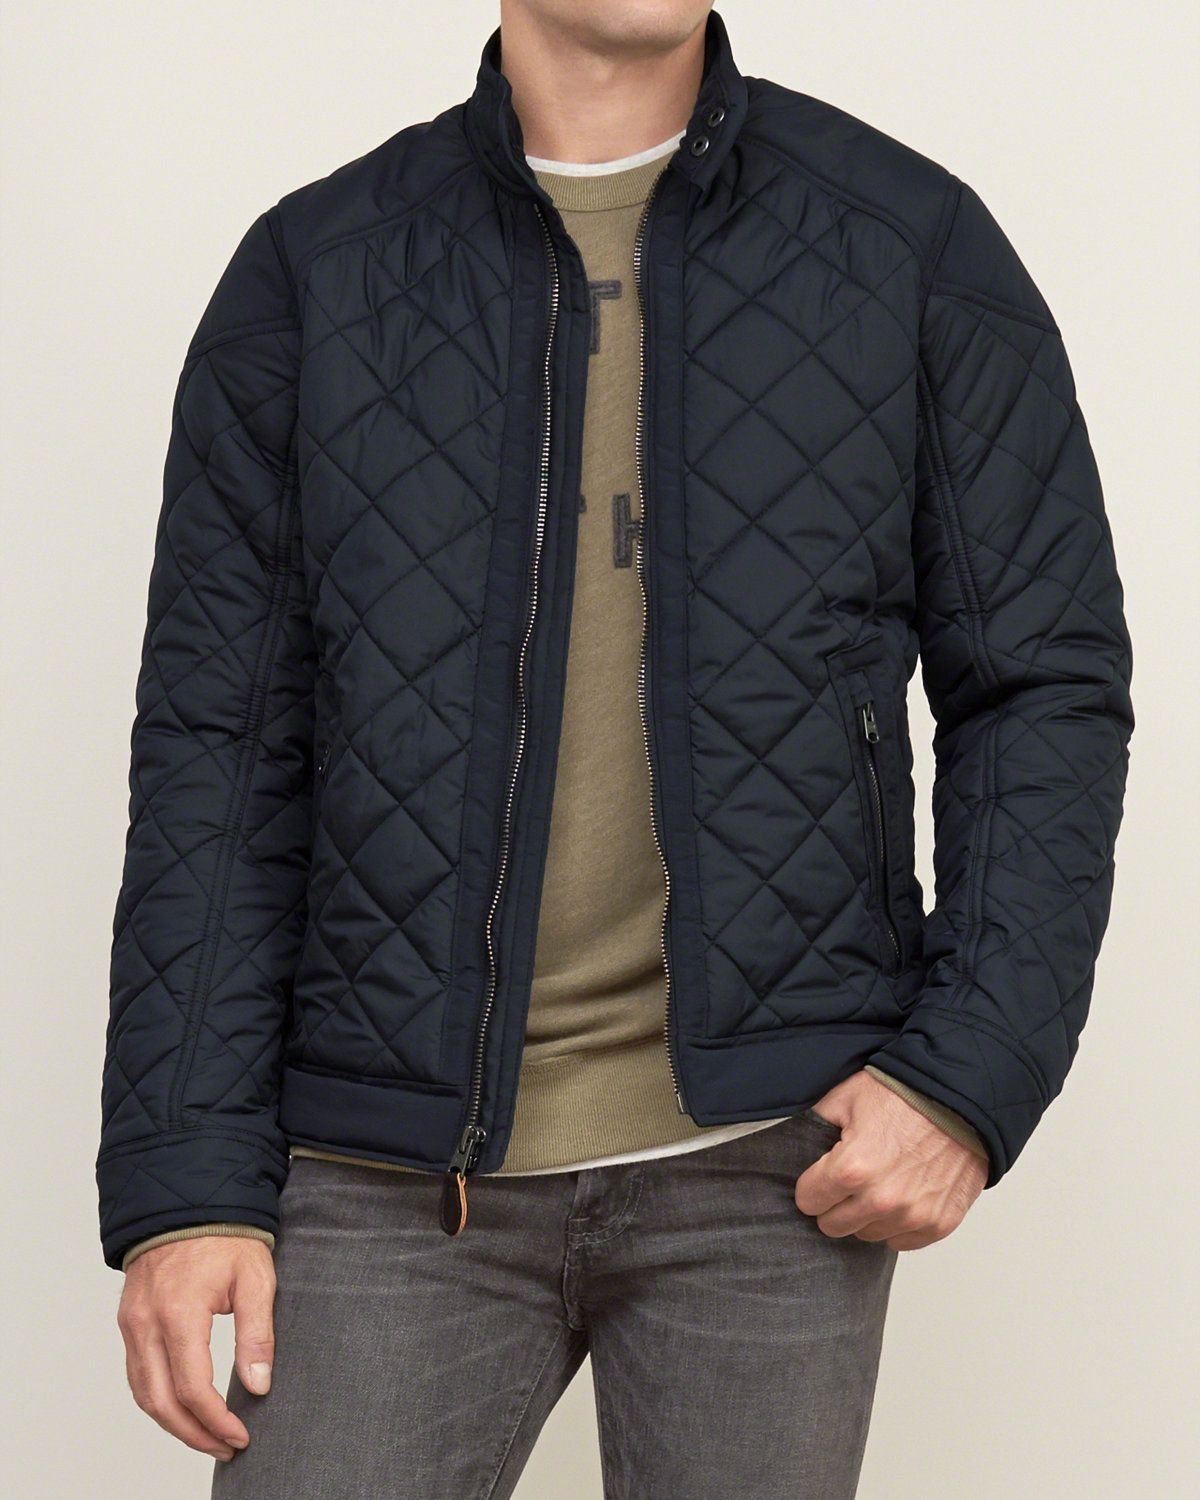 Quilted Bomber Jacket Mens Outerwear Jacket Quilted Jacket Men Quilted Bomber Jacket